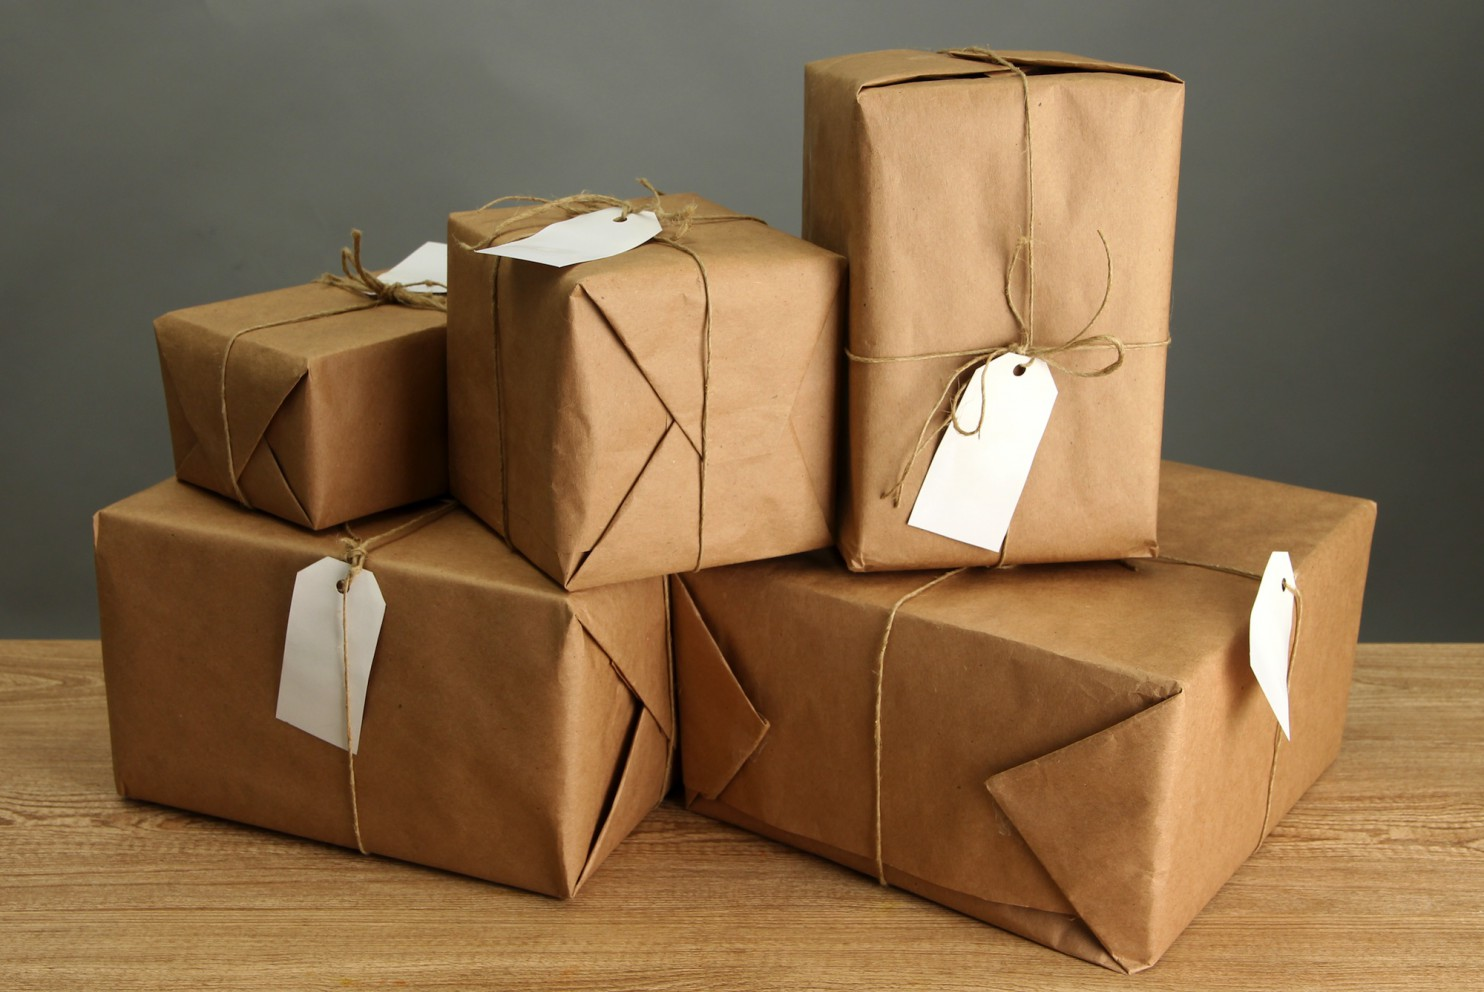 brown paper parcel packages ready for delivery